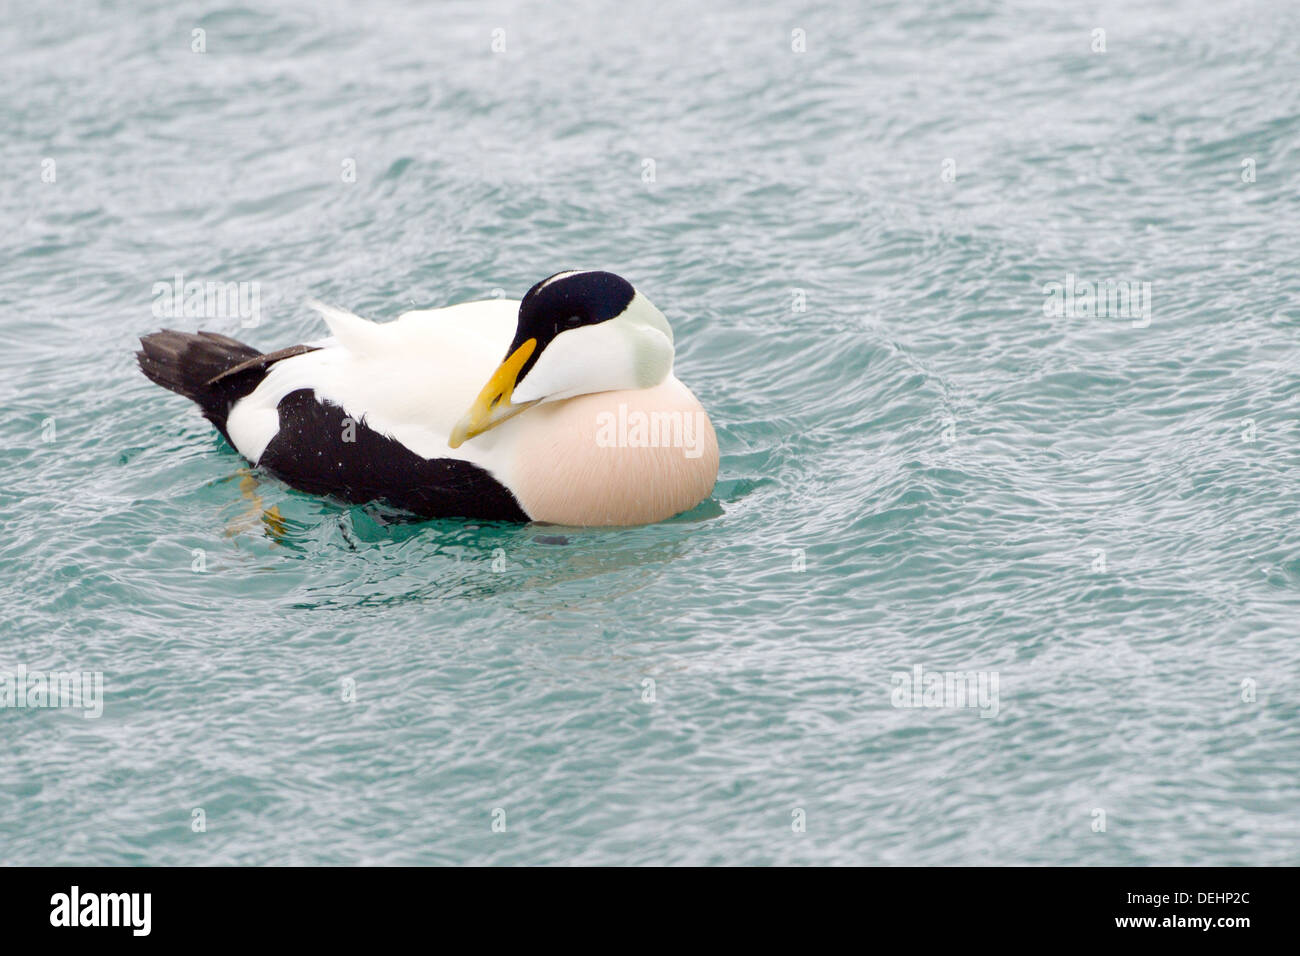 Common eider in water with wind blowing over water. - Stock Image